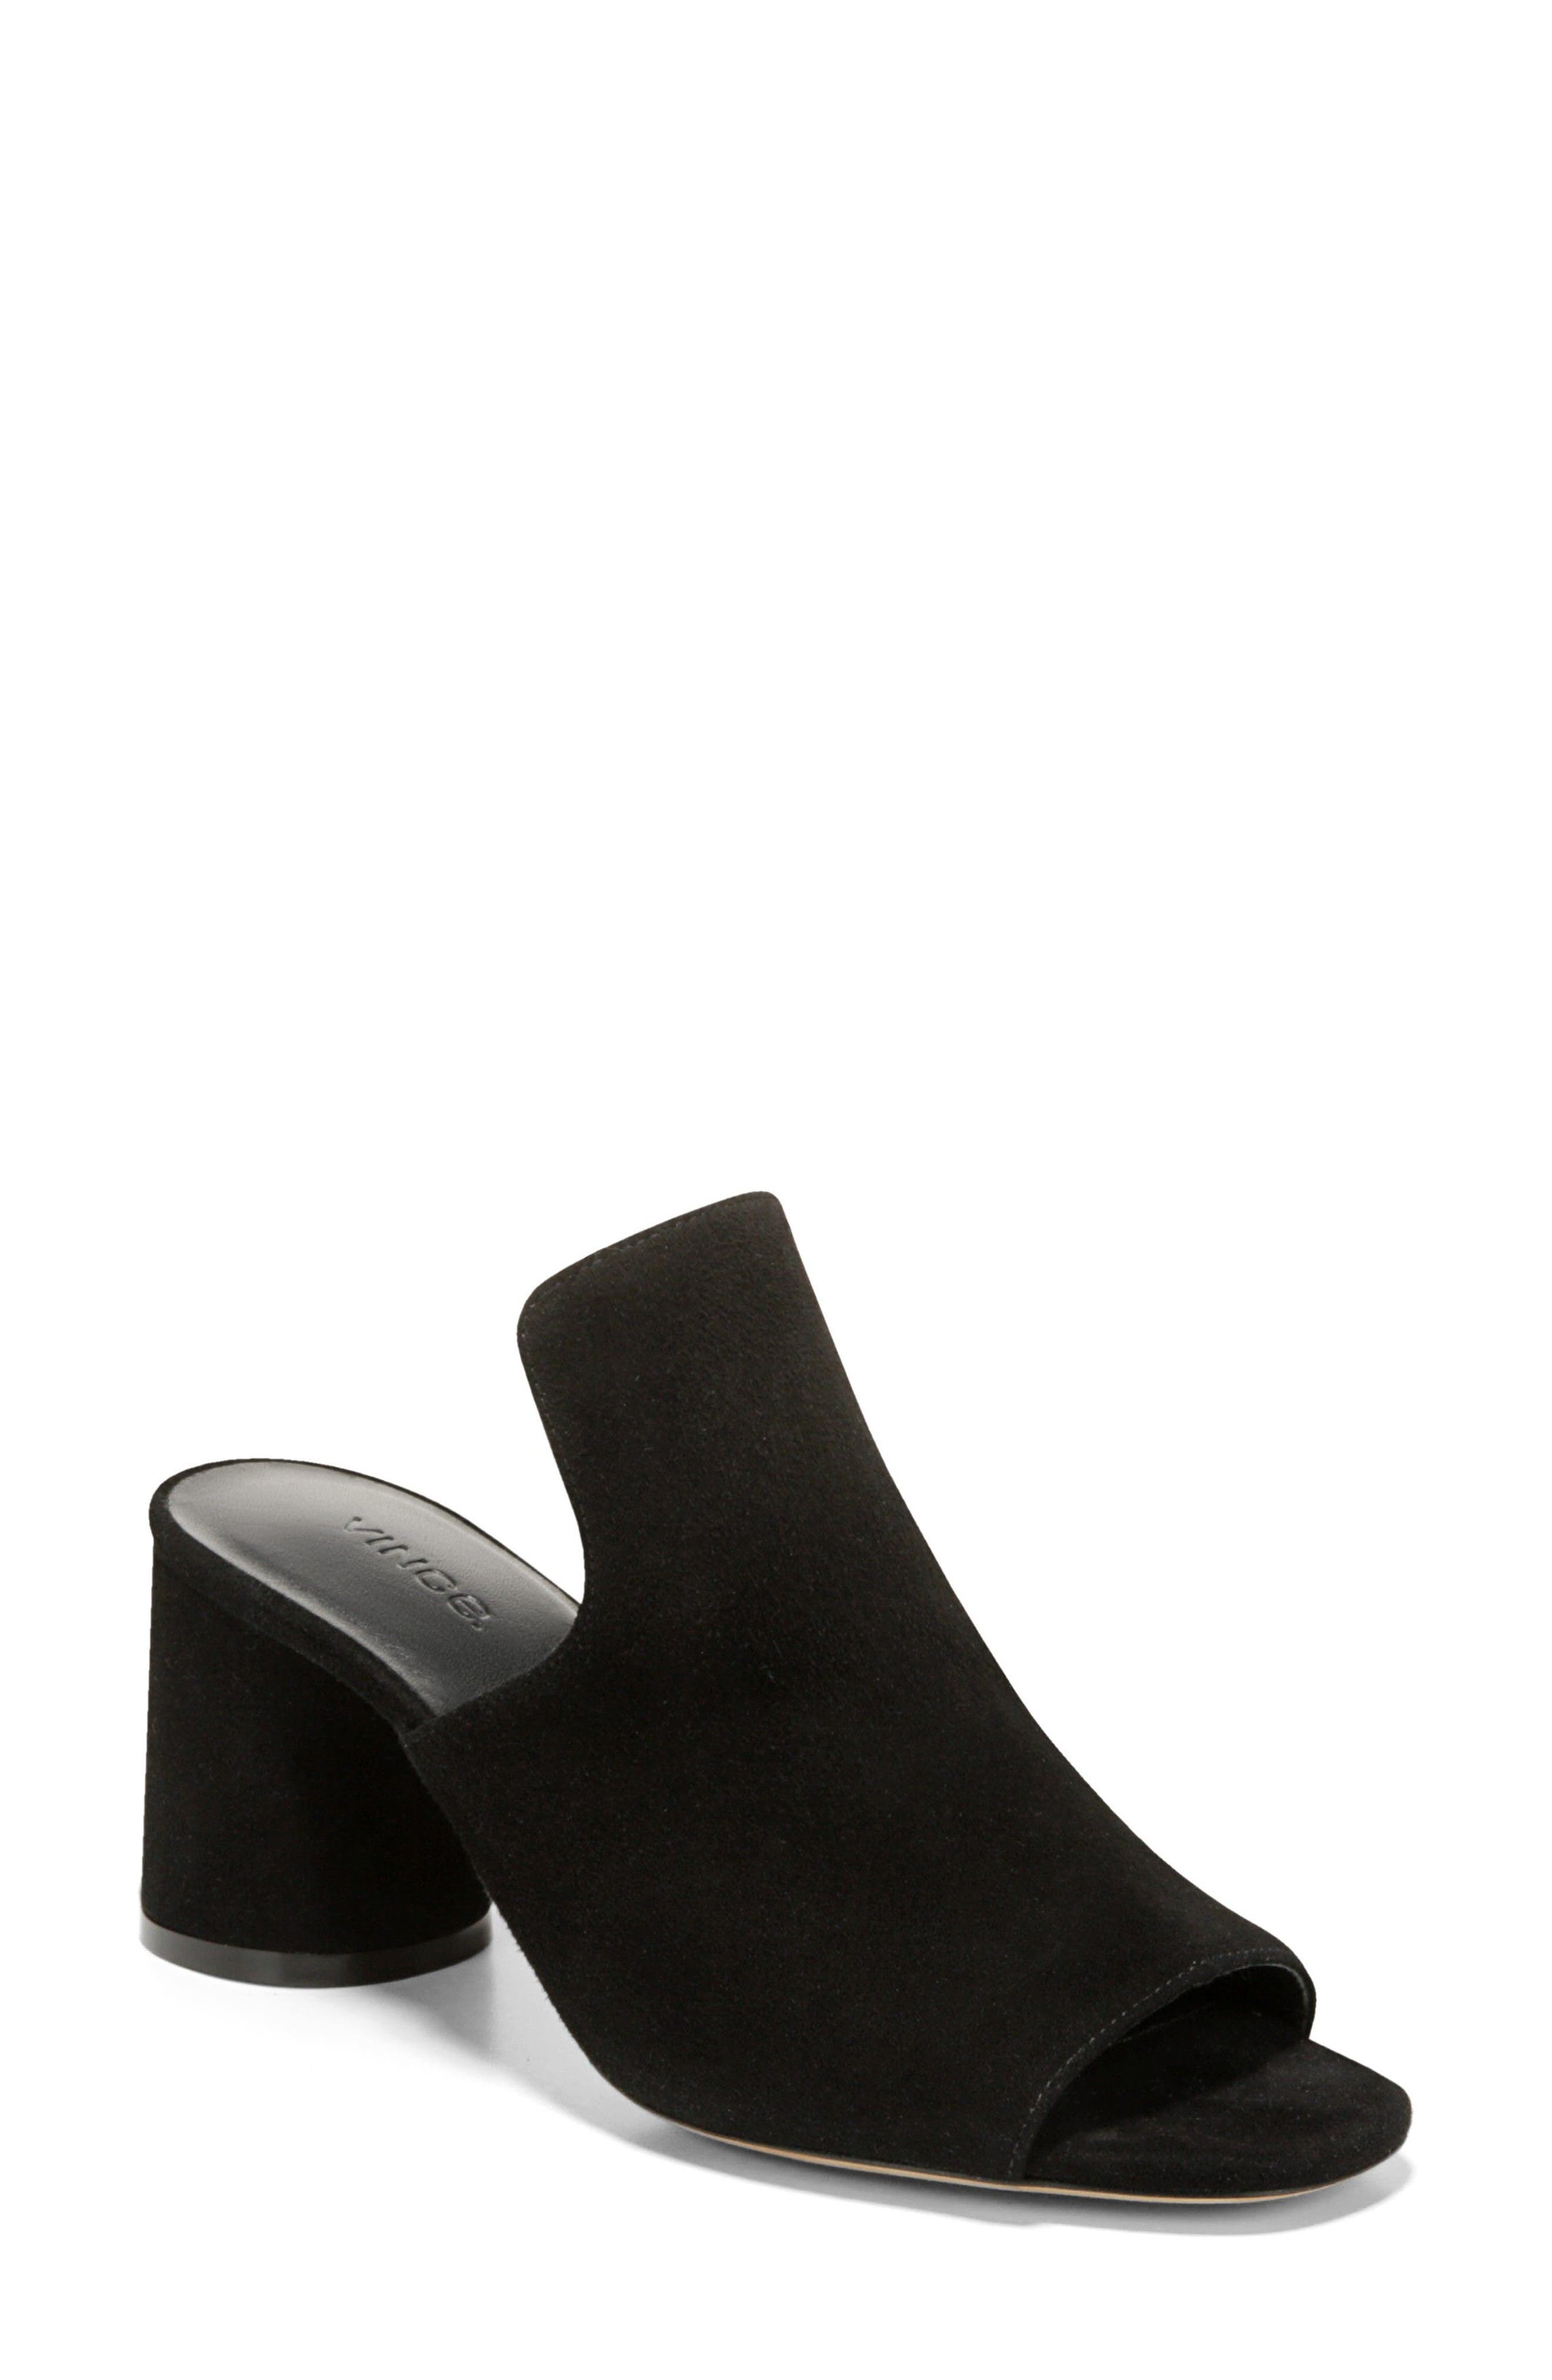 Tanay Loafer Mule,                         Main,                         color, BLACK SUEDE LEATHER